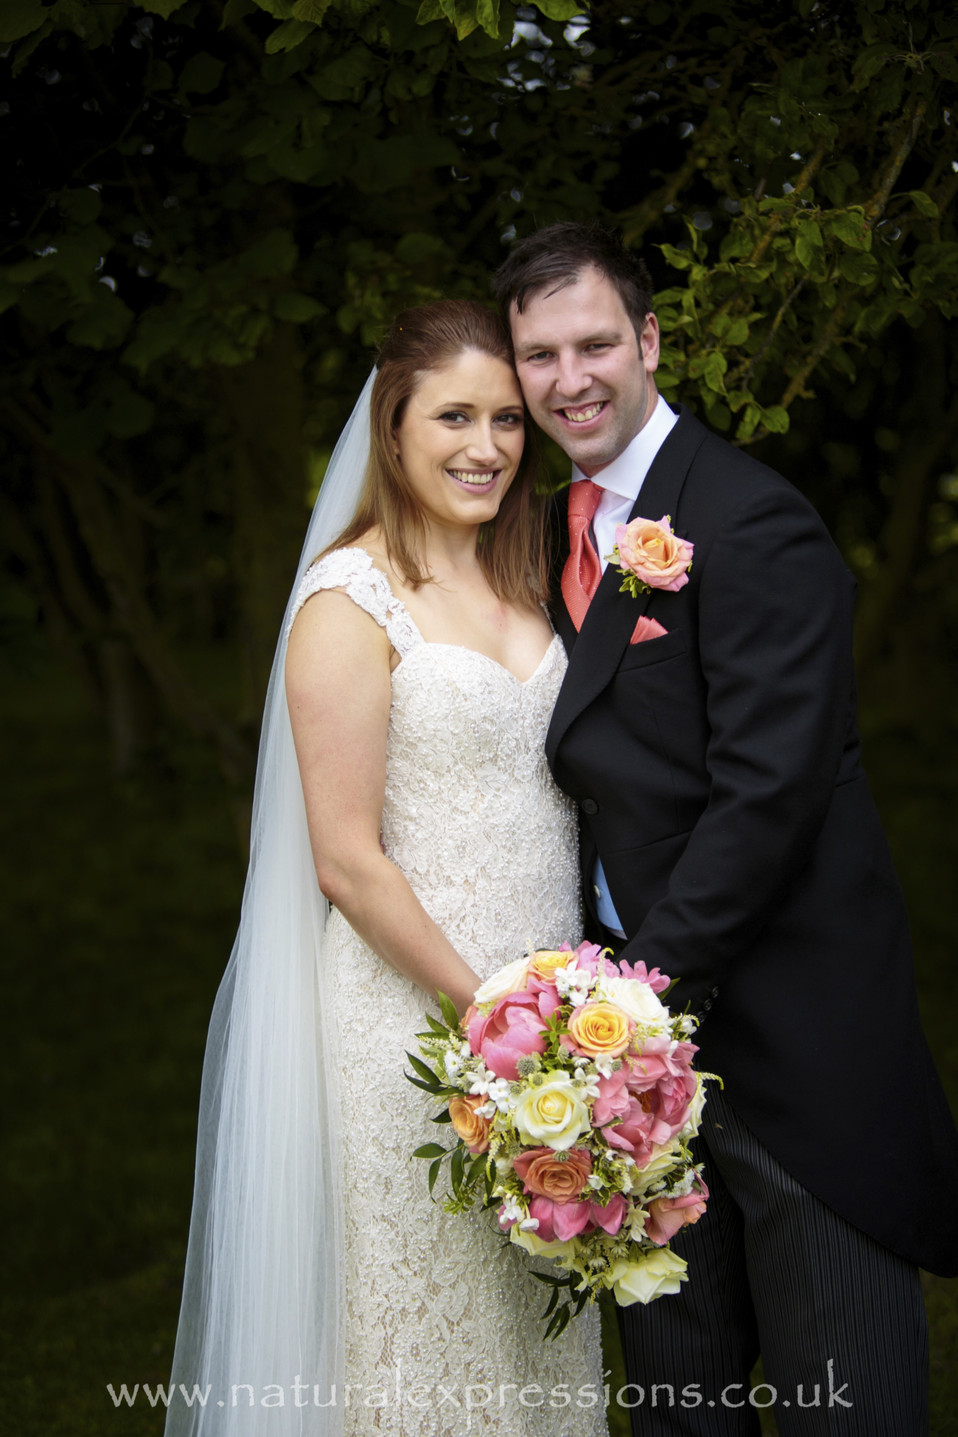 Bride and Groom with Bouquet.jpg